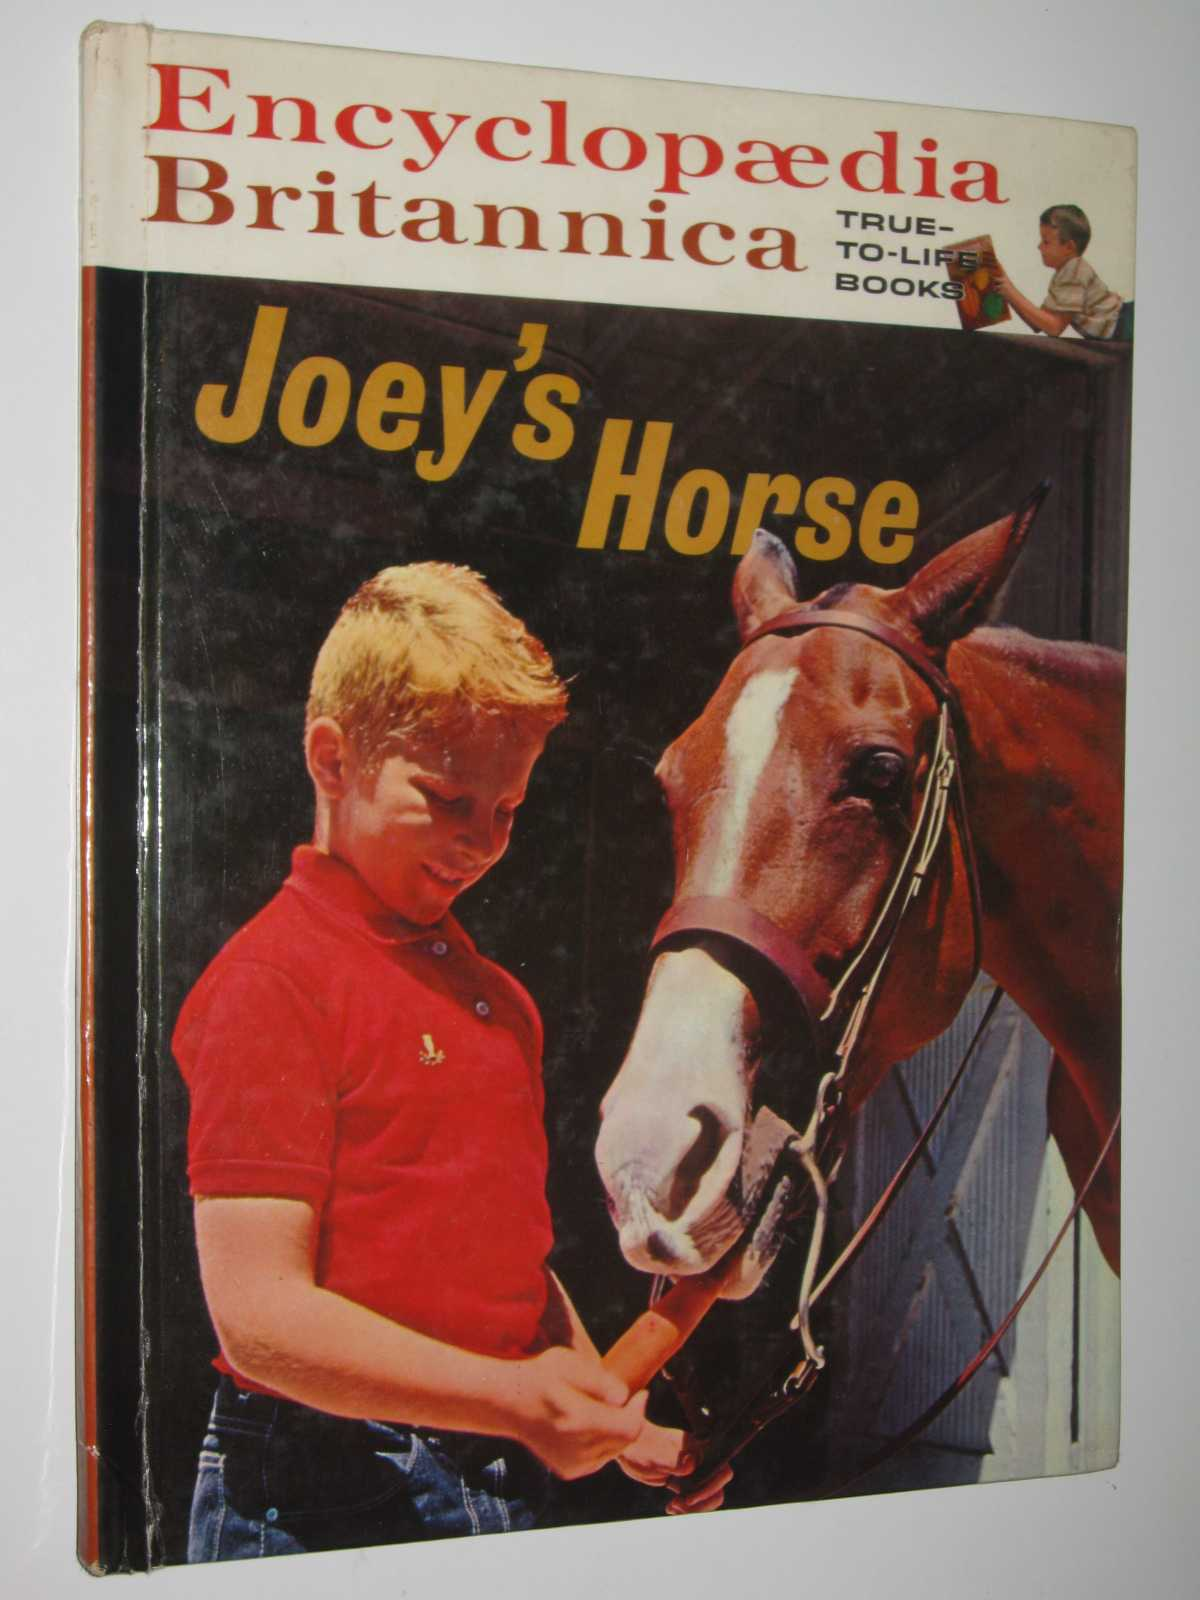 Image for Joey's Horse - Encyclopaedia Britannica True-to-Life Books